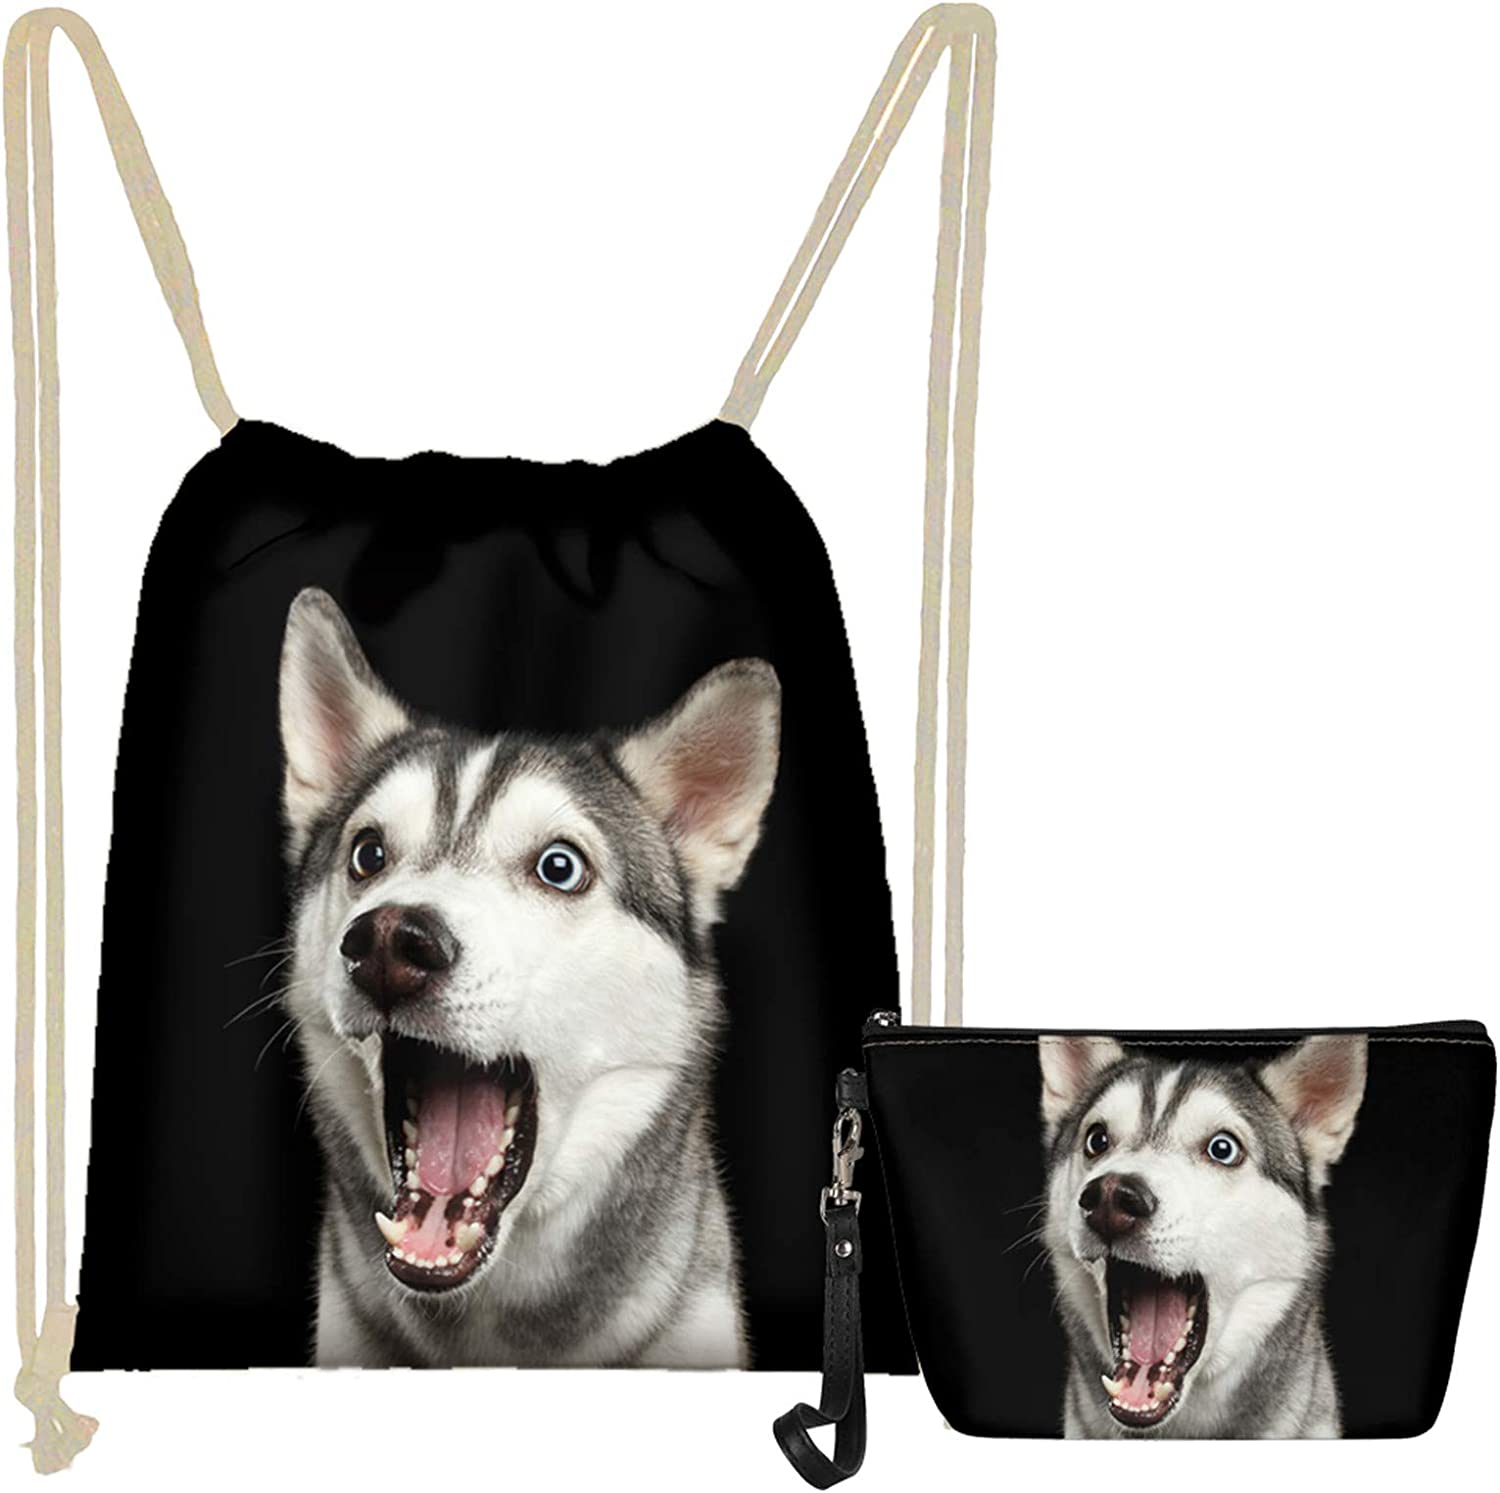 WELLFLYHOM 2 Pcs Set Grey Wolf Drawstring Backpack Tote String Cinch Sack Bags for School,Travel,Gym,Yoga Sports Makeup Bag Pencil Pouch Small for Women Teens Girls Kids